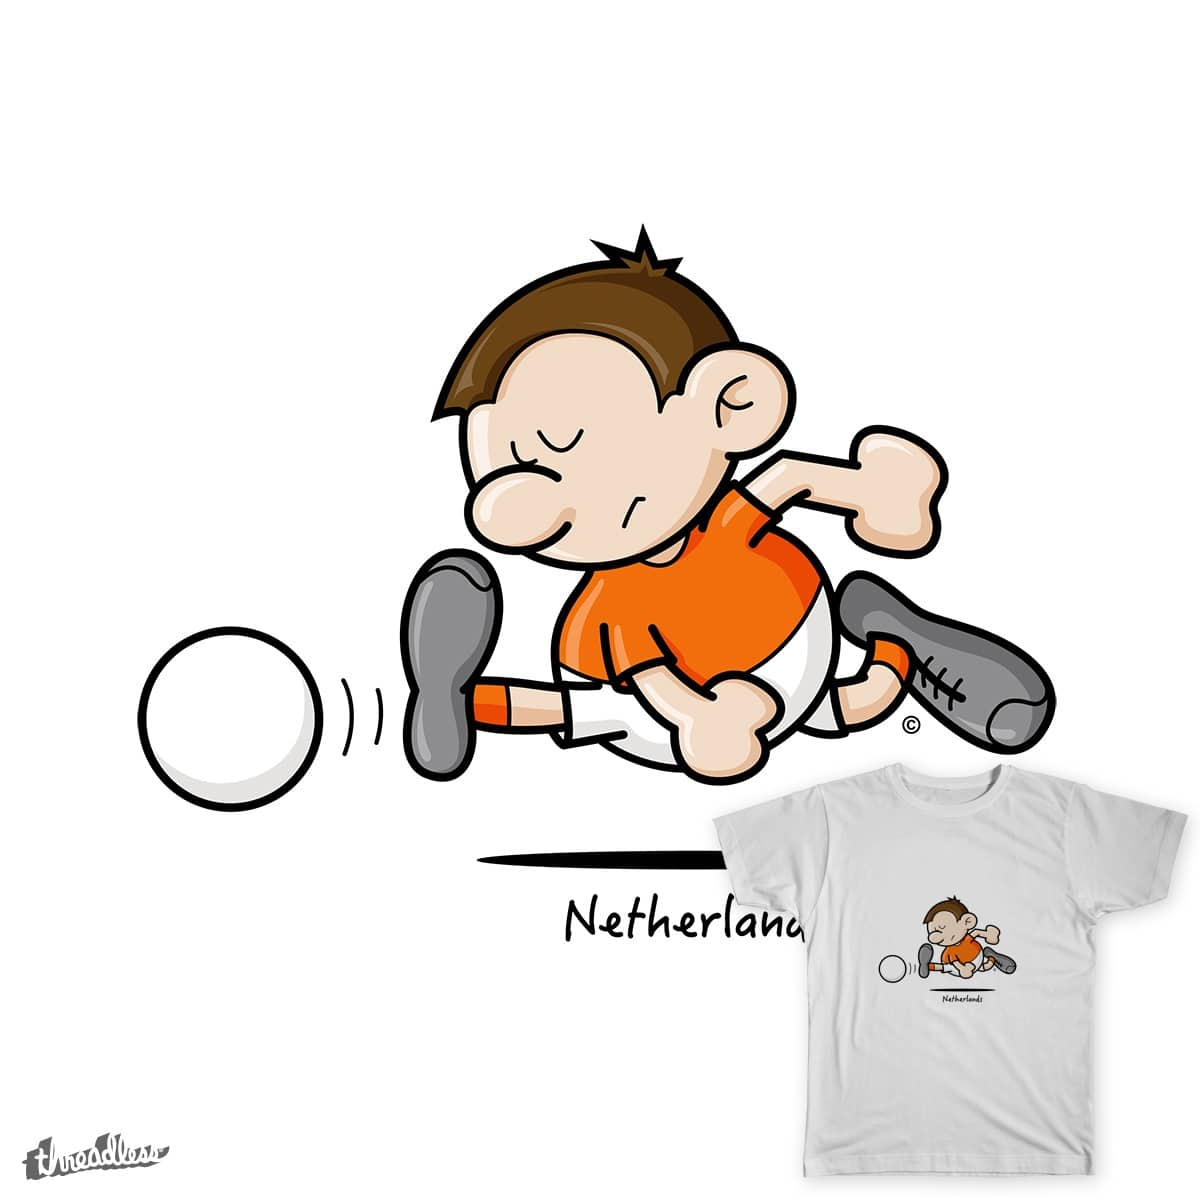 2014 World Cup Cartoons - Netherlands by spaghettiarts on Threadless